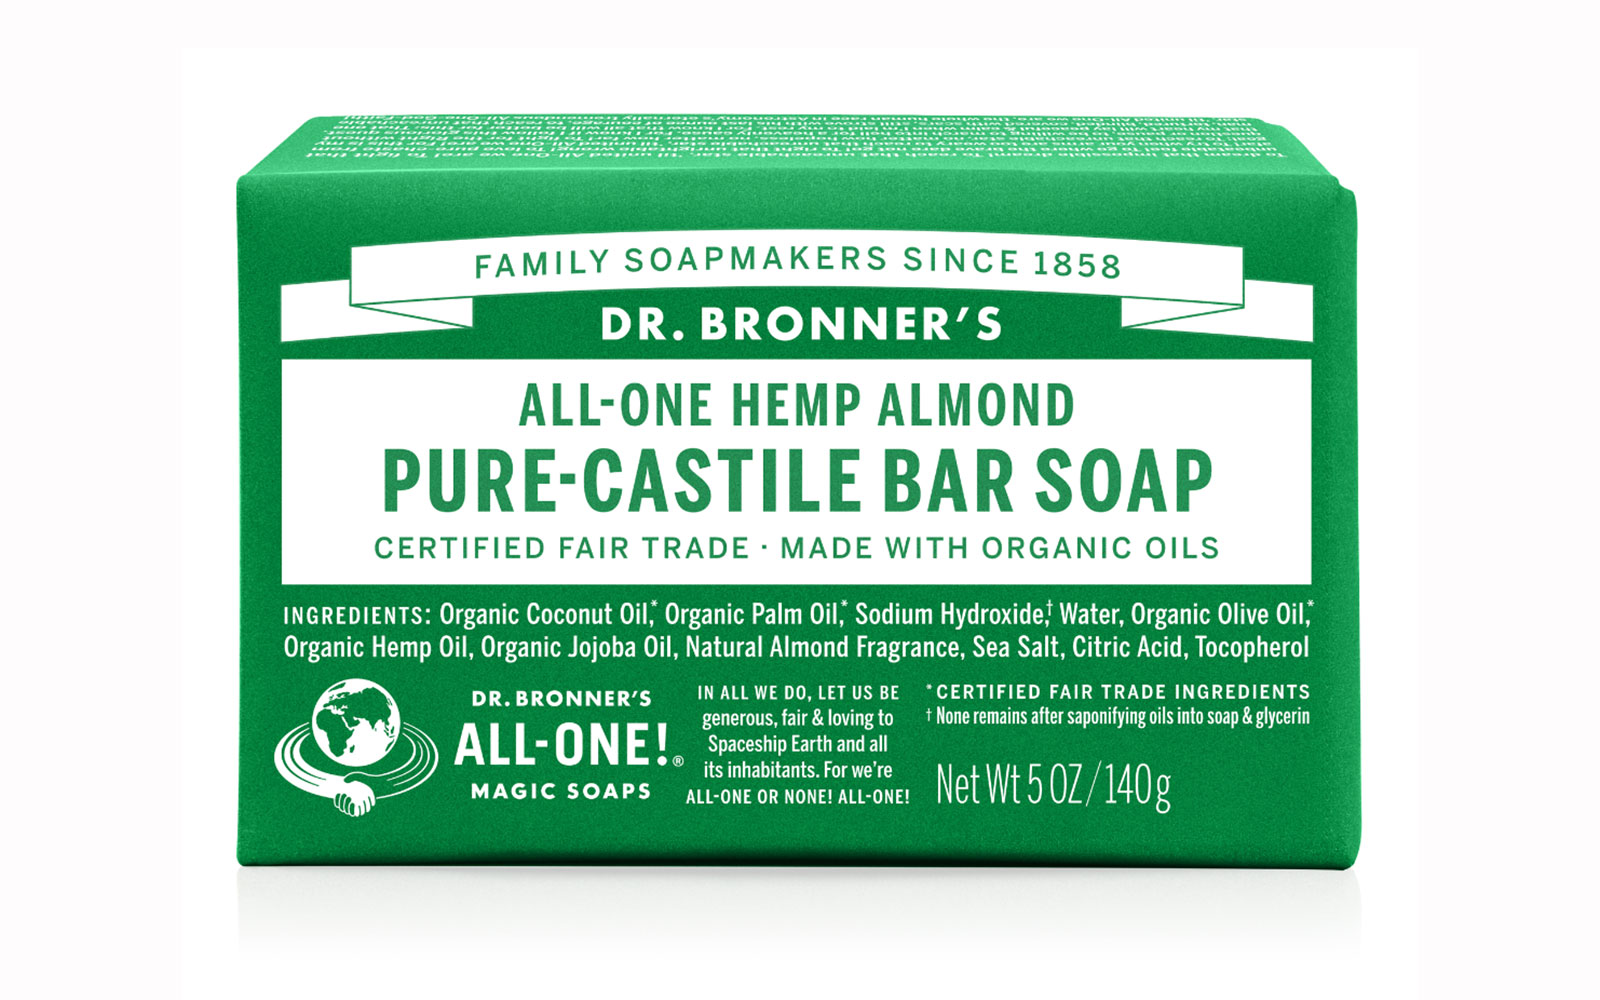 19 Liquid-Free Beauty Products for a Spill-Proof Carry-On: Dr. Bronner's Almond Castile Soap